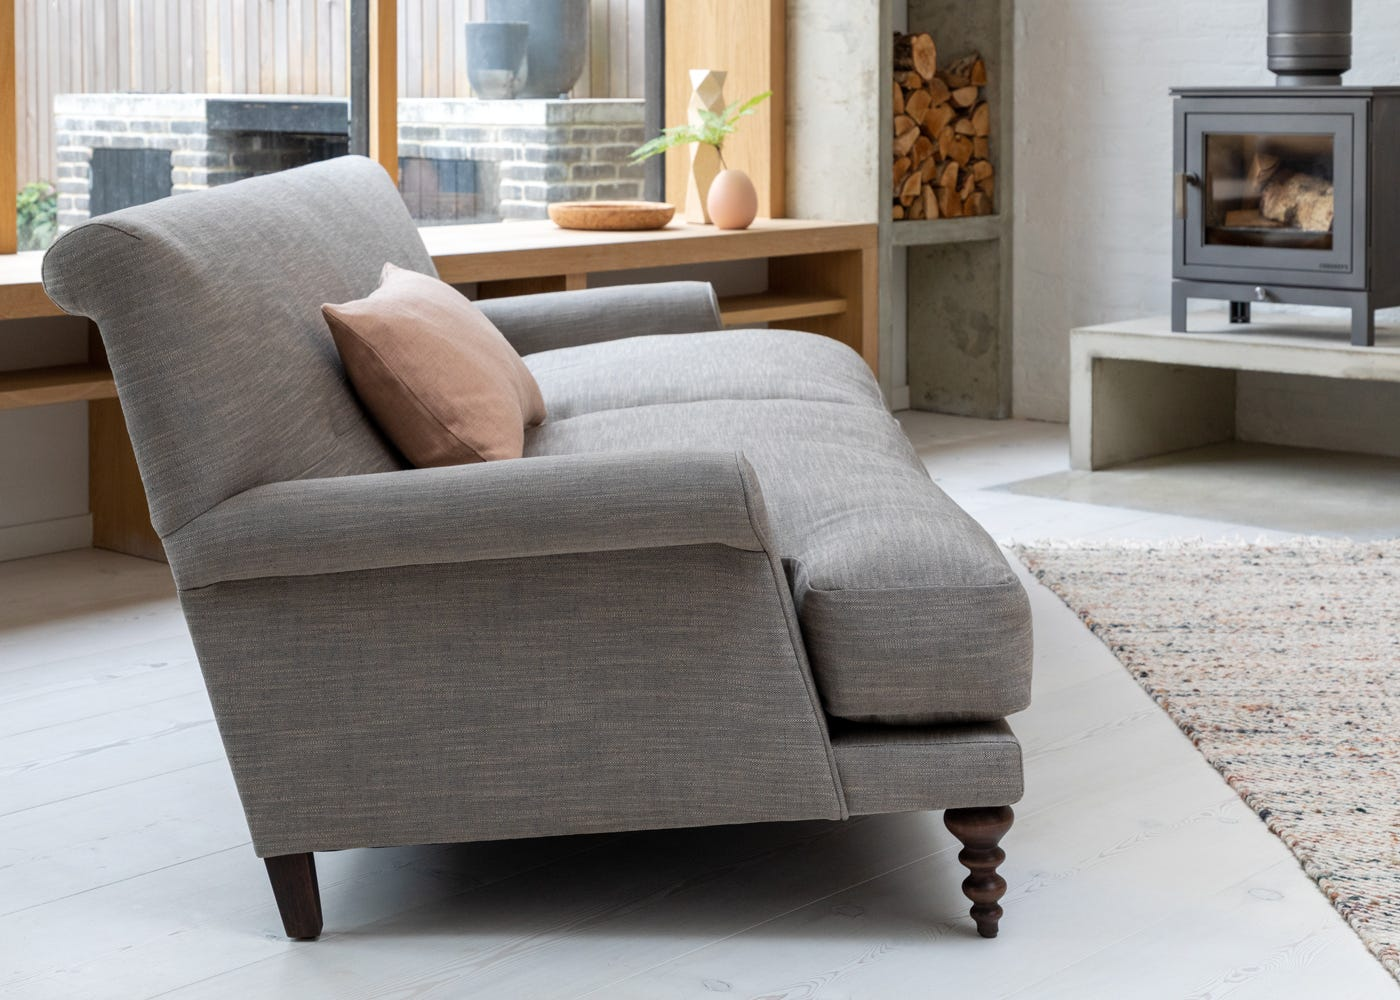 Oscar Formal 3 Seater Sofa in Broad Weave Pebble. The Oscar Formal sofa offers a tall, upright position